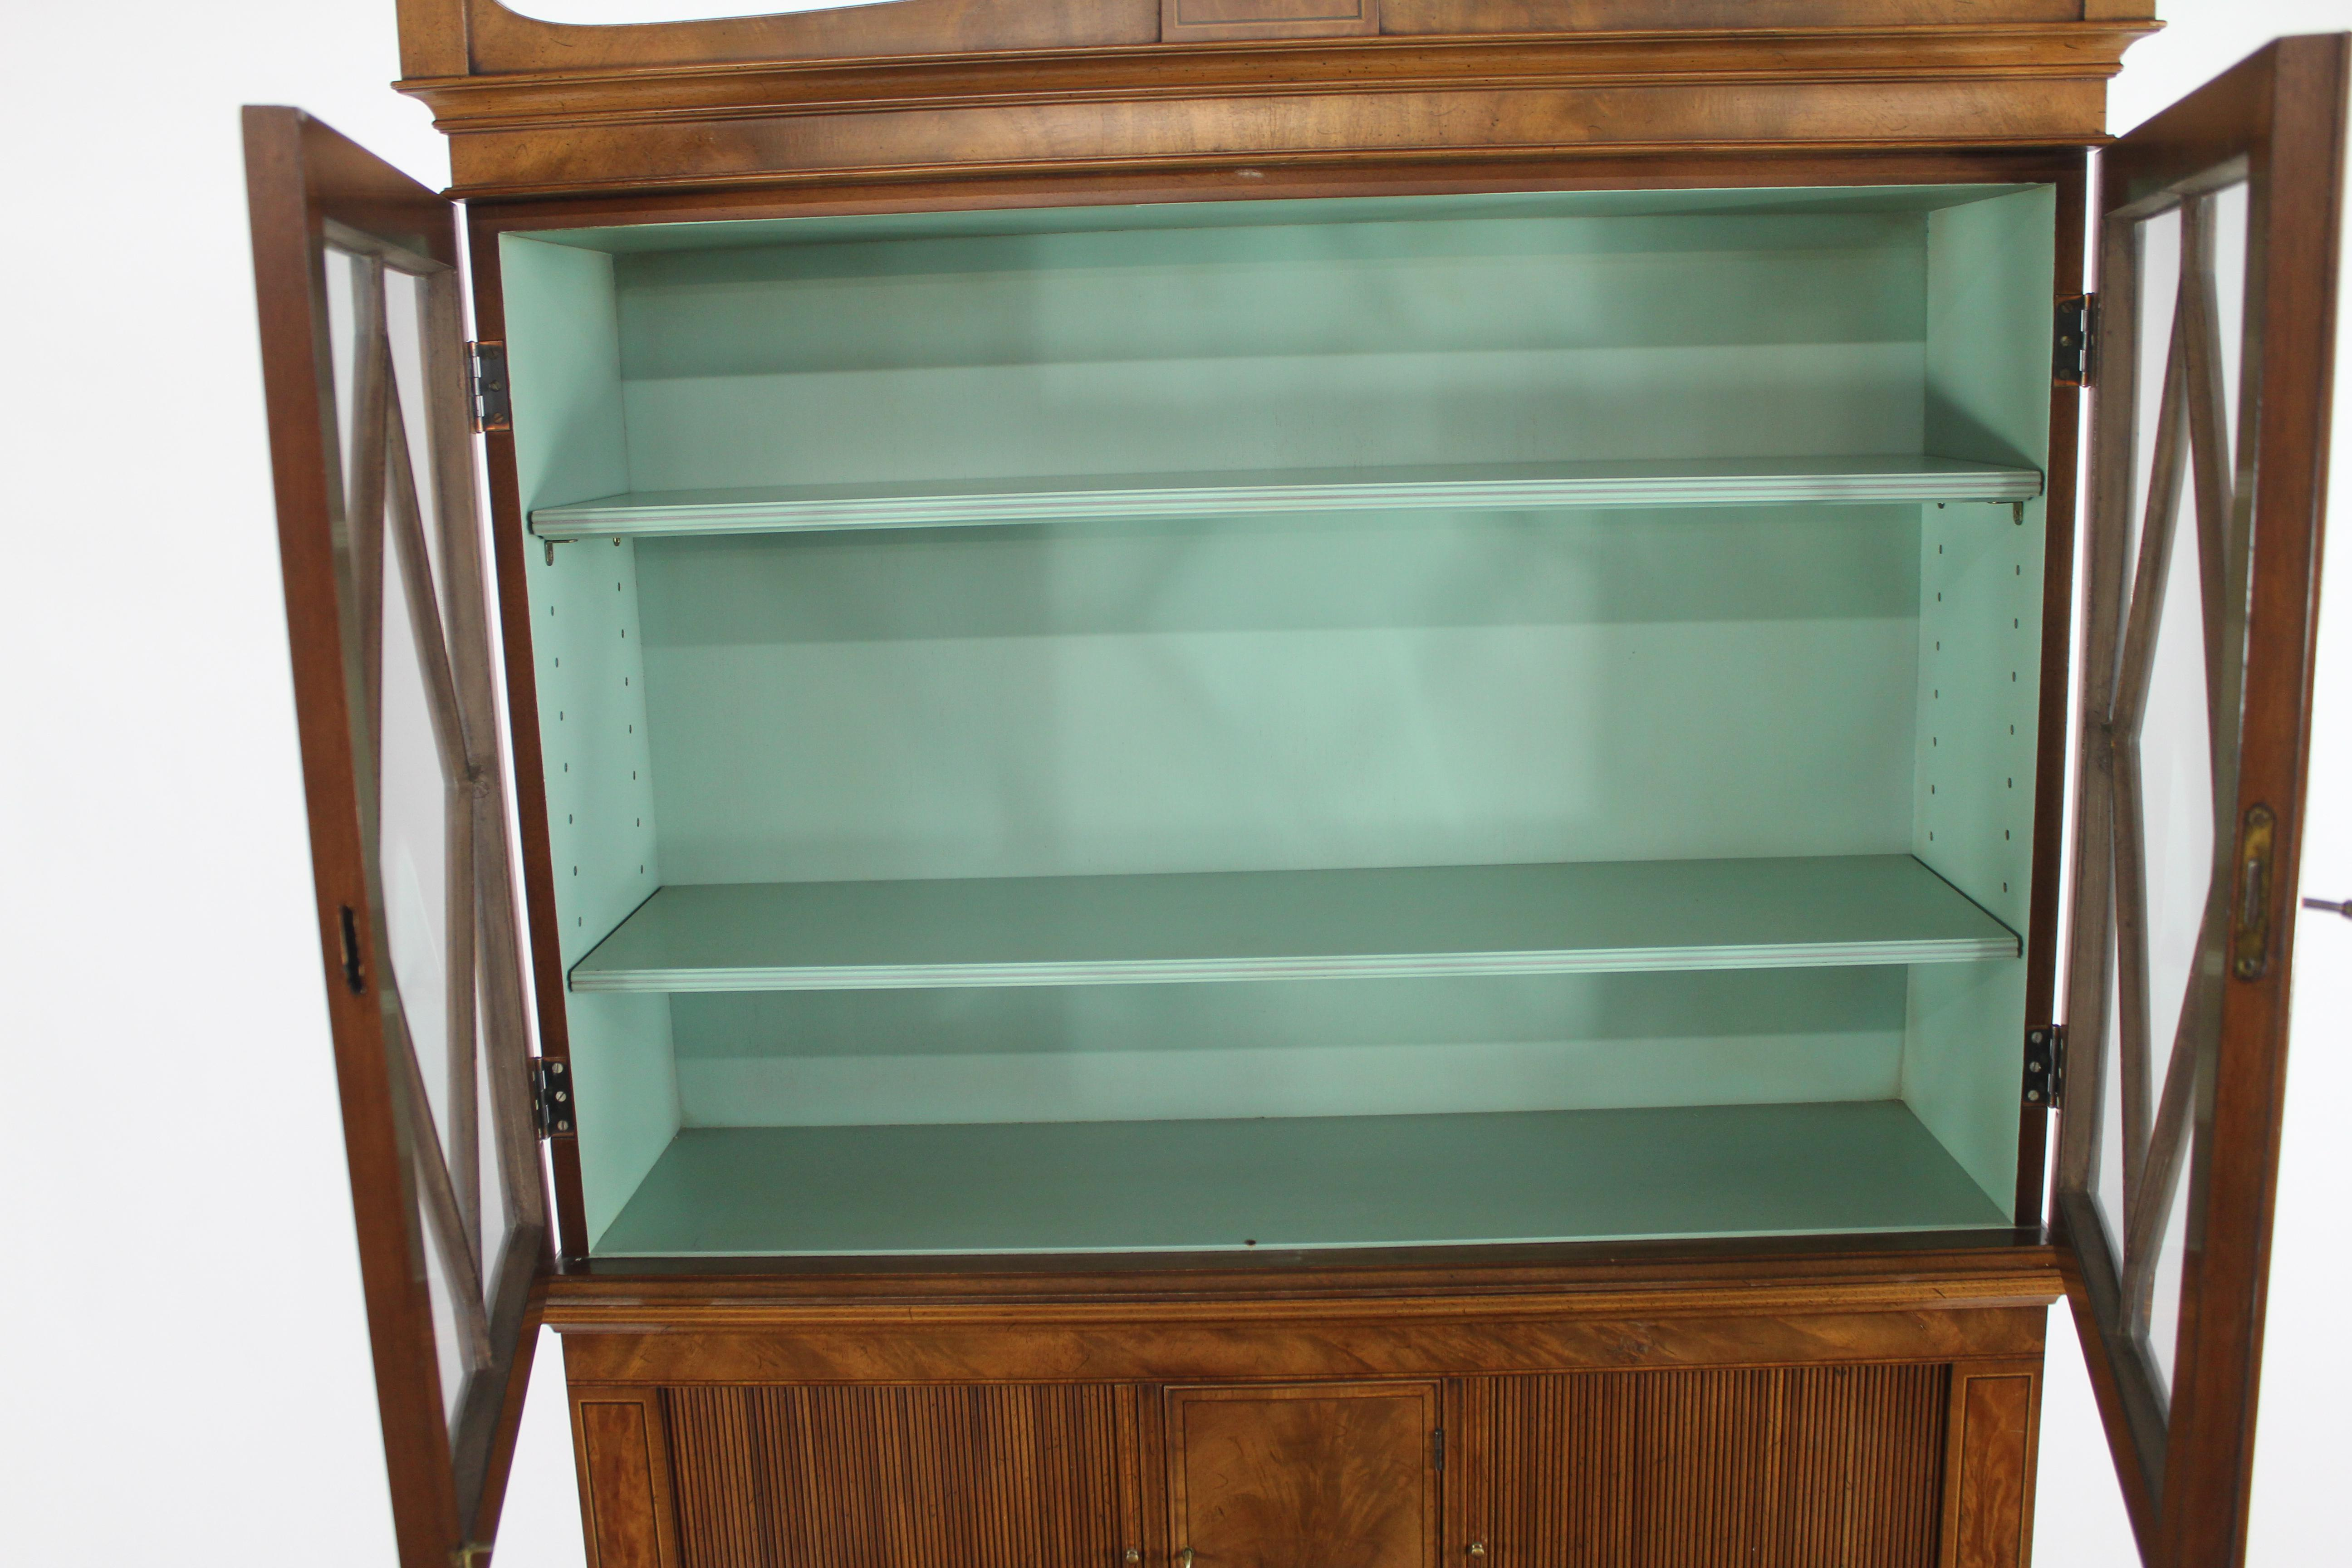 Marvelous Beacon Hill Furniture Sheridan Style Drop Front Desk   Image 7 Of 10